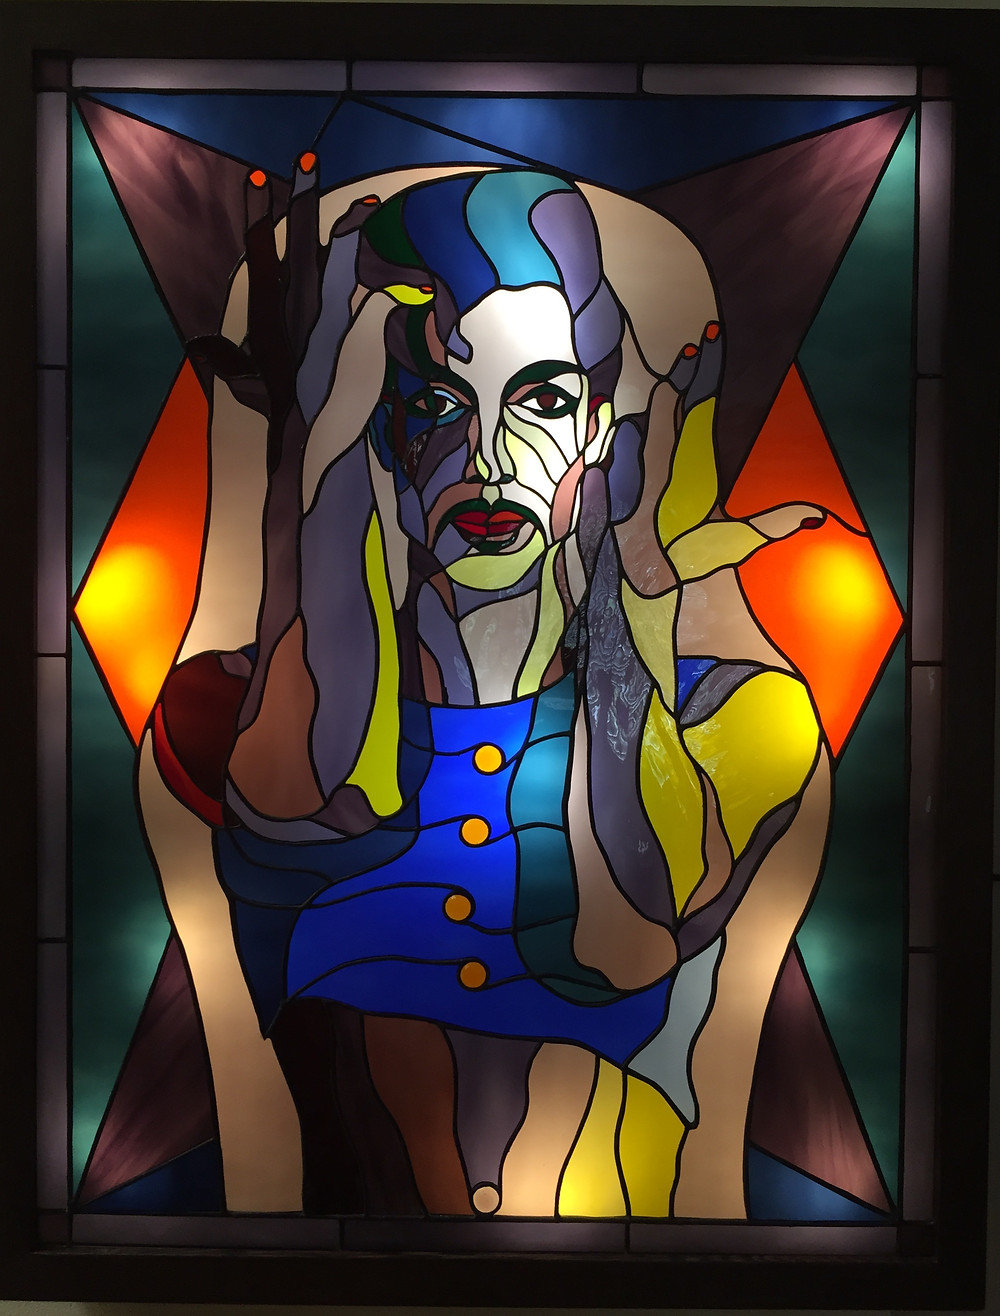 The musician Prince is depicted in colored glass